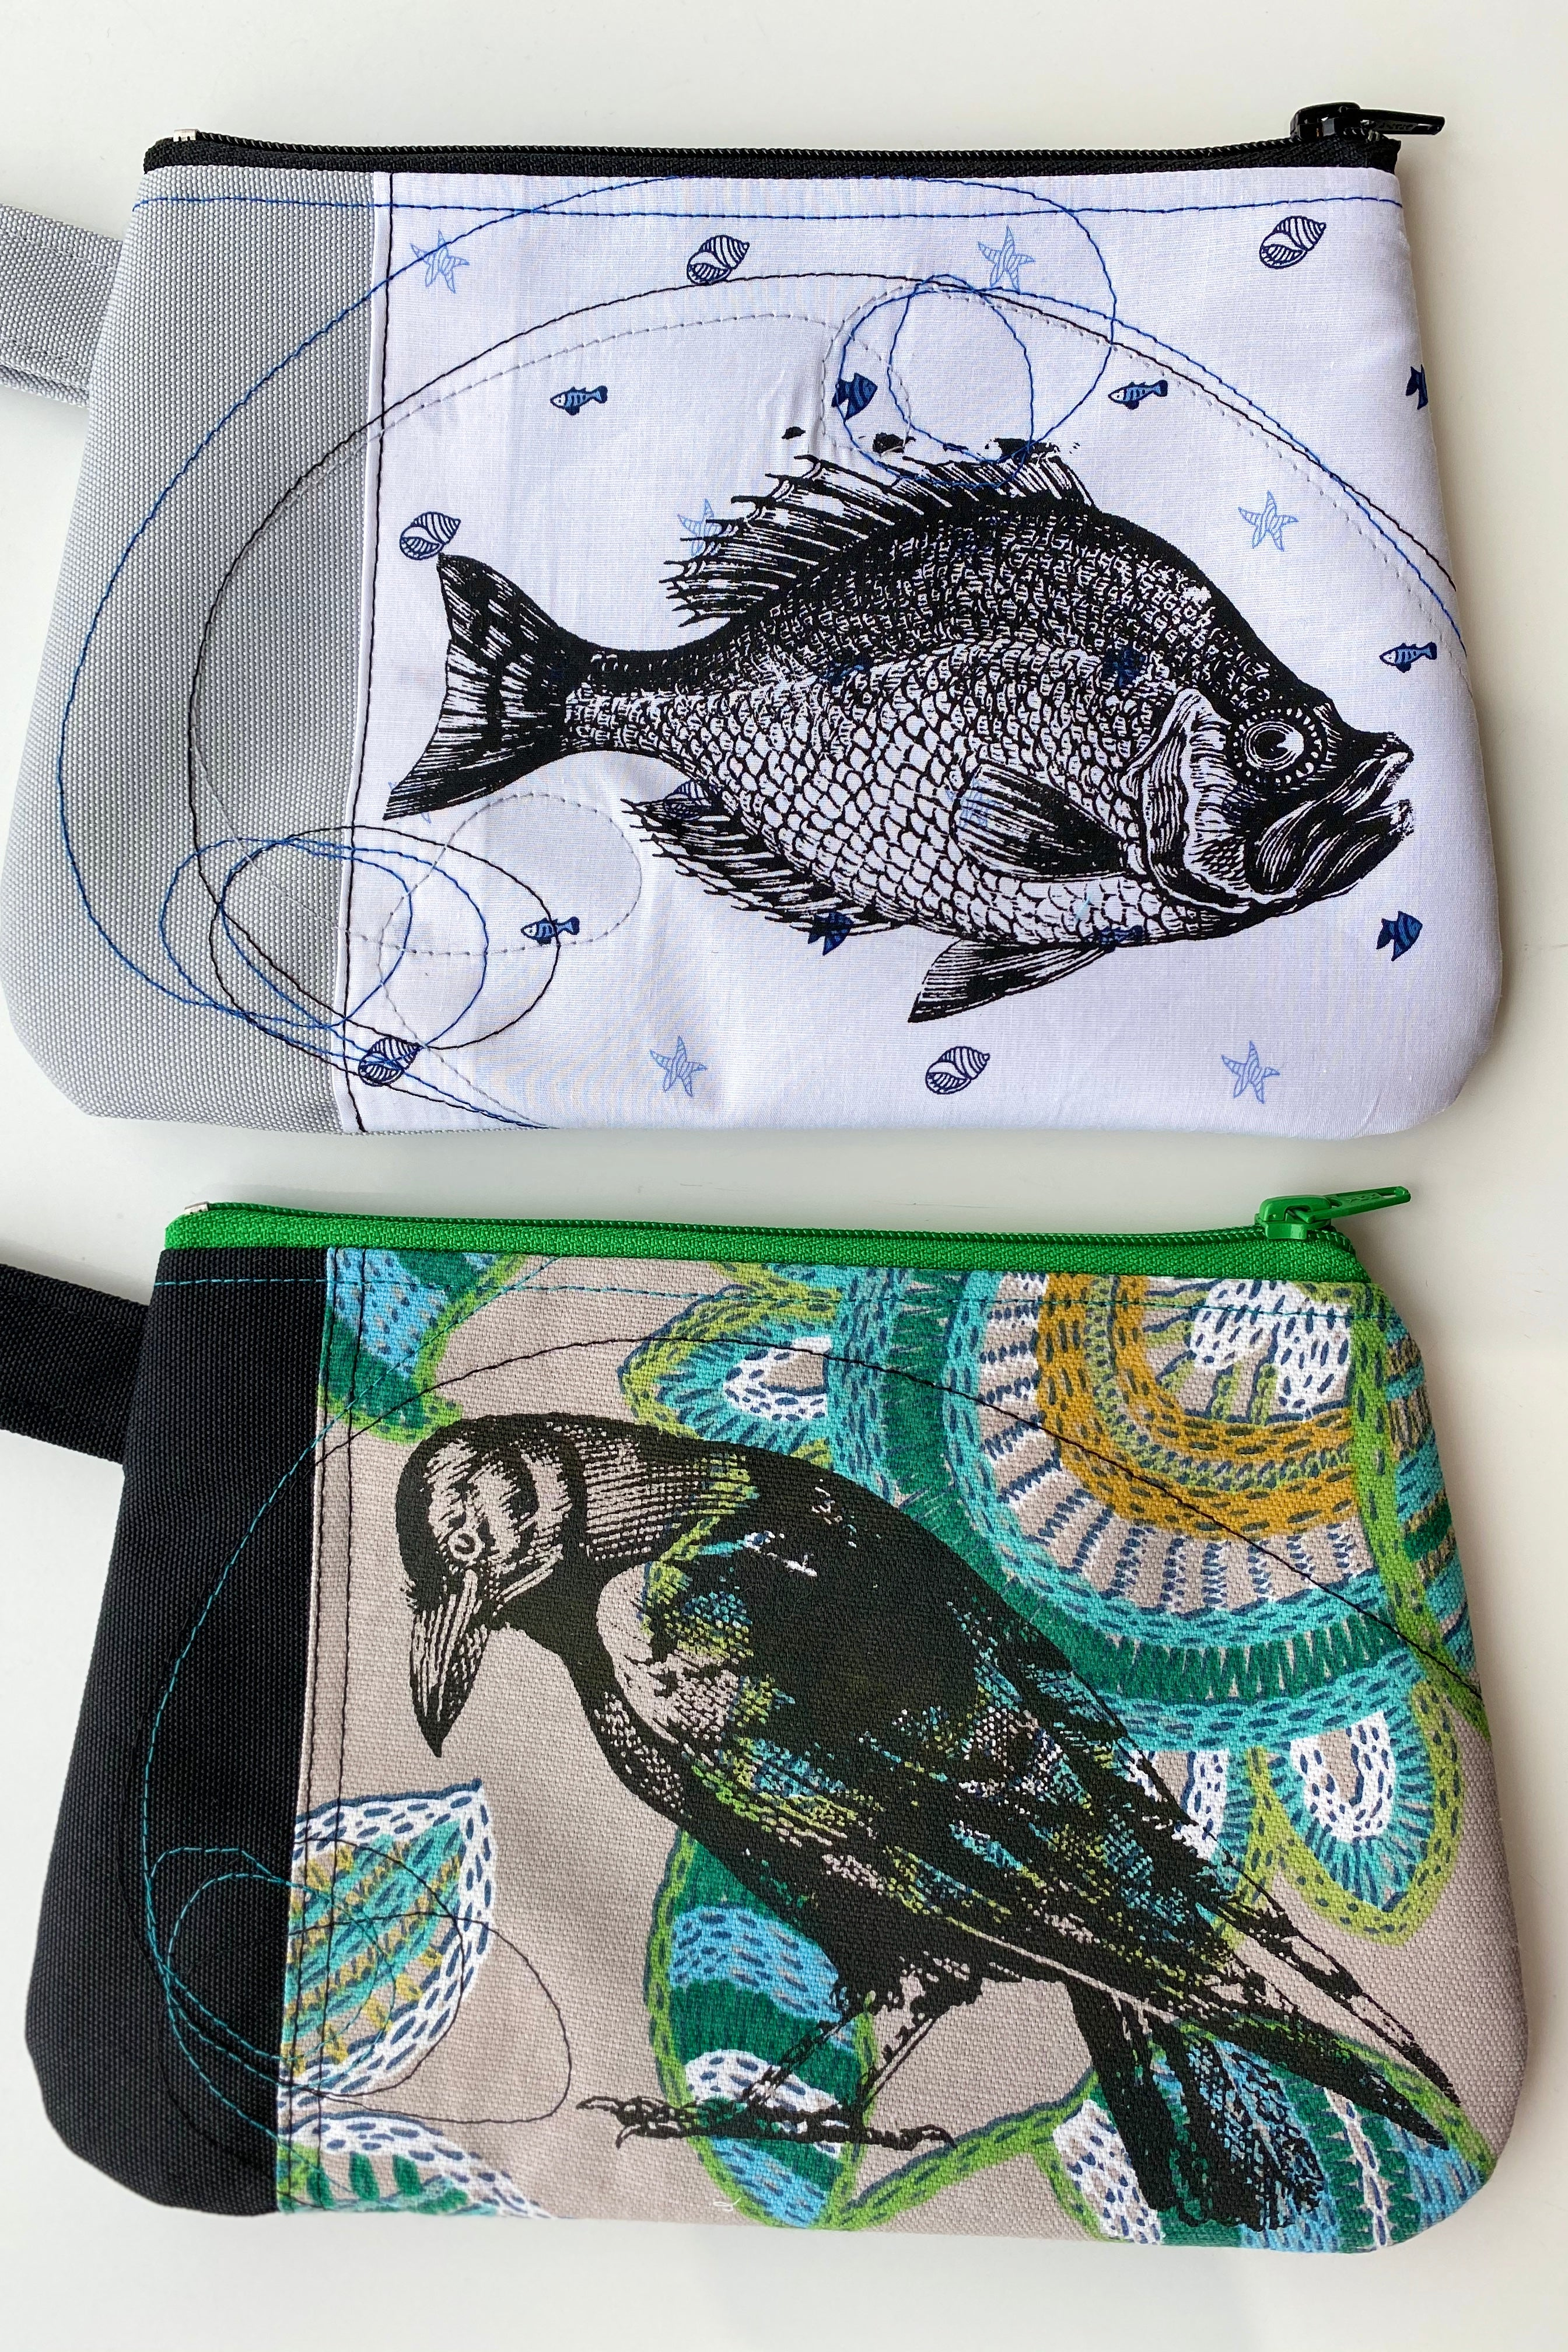 Cynthia DM waterproof pouches-Fish and Crow